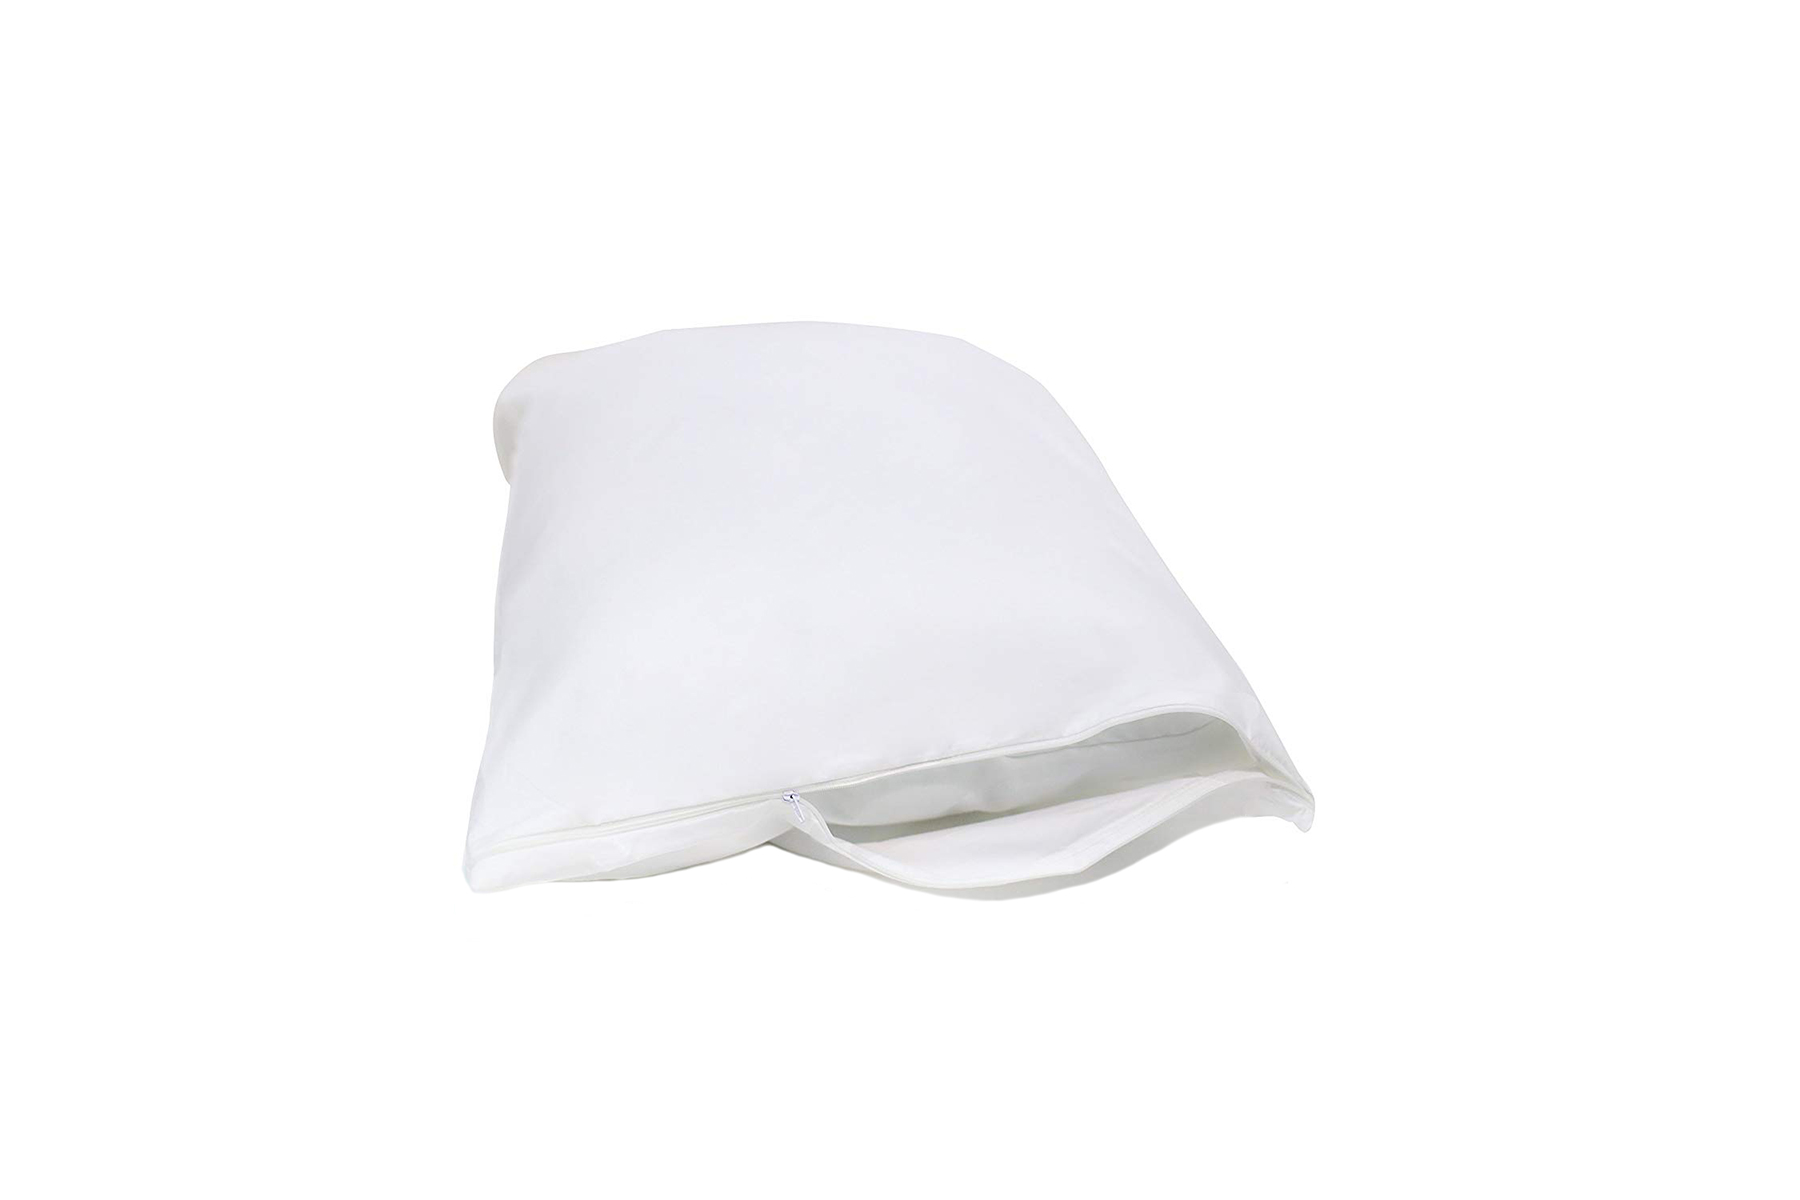 Allersoft 100 Percent Cotton Allergy Control Pillow Protector